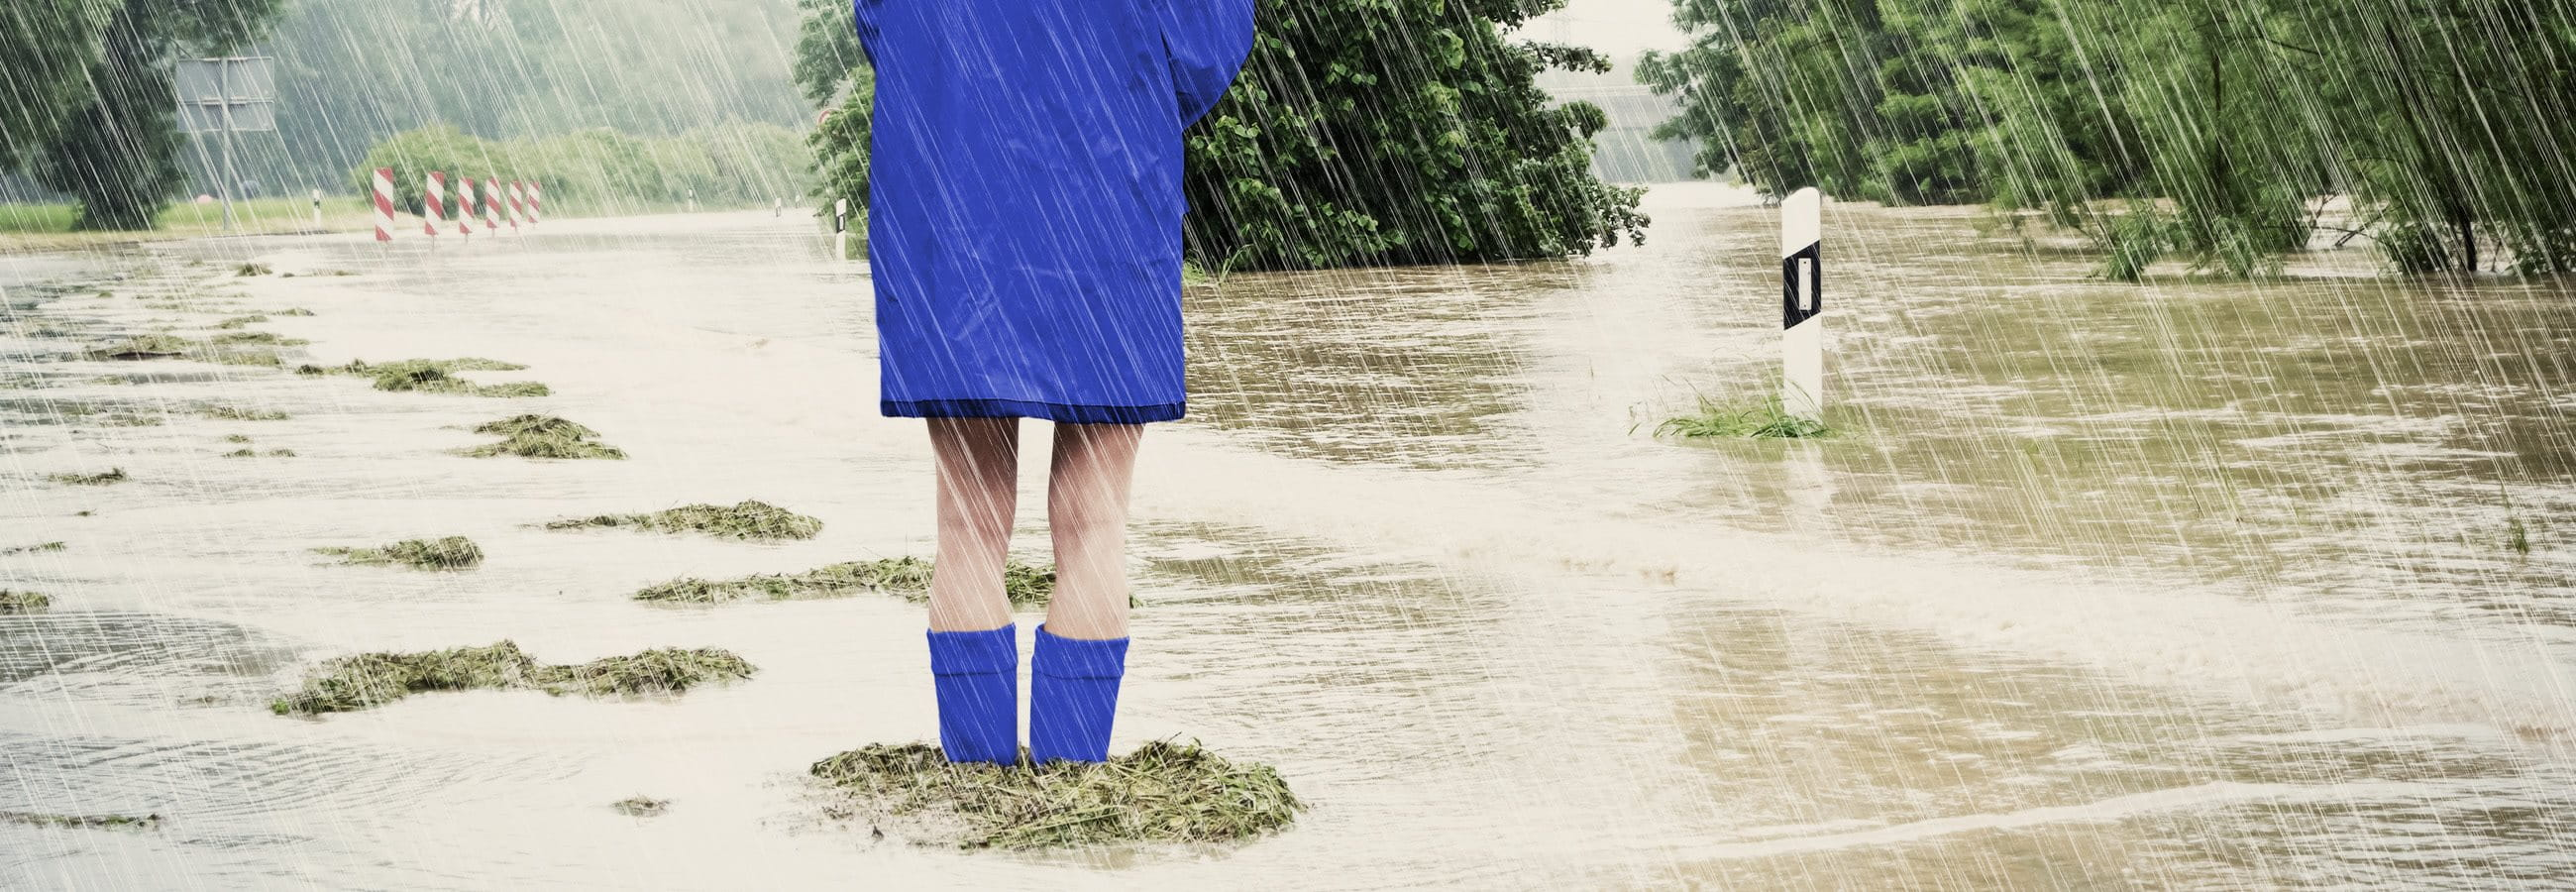 Woman standing in a flood wearing a raincoat and rubber boots